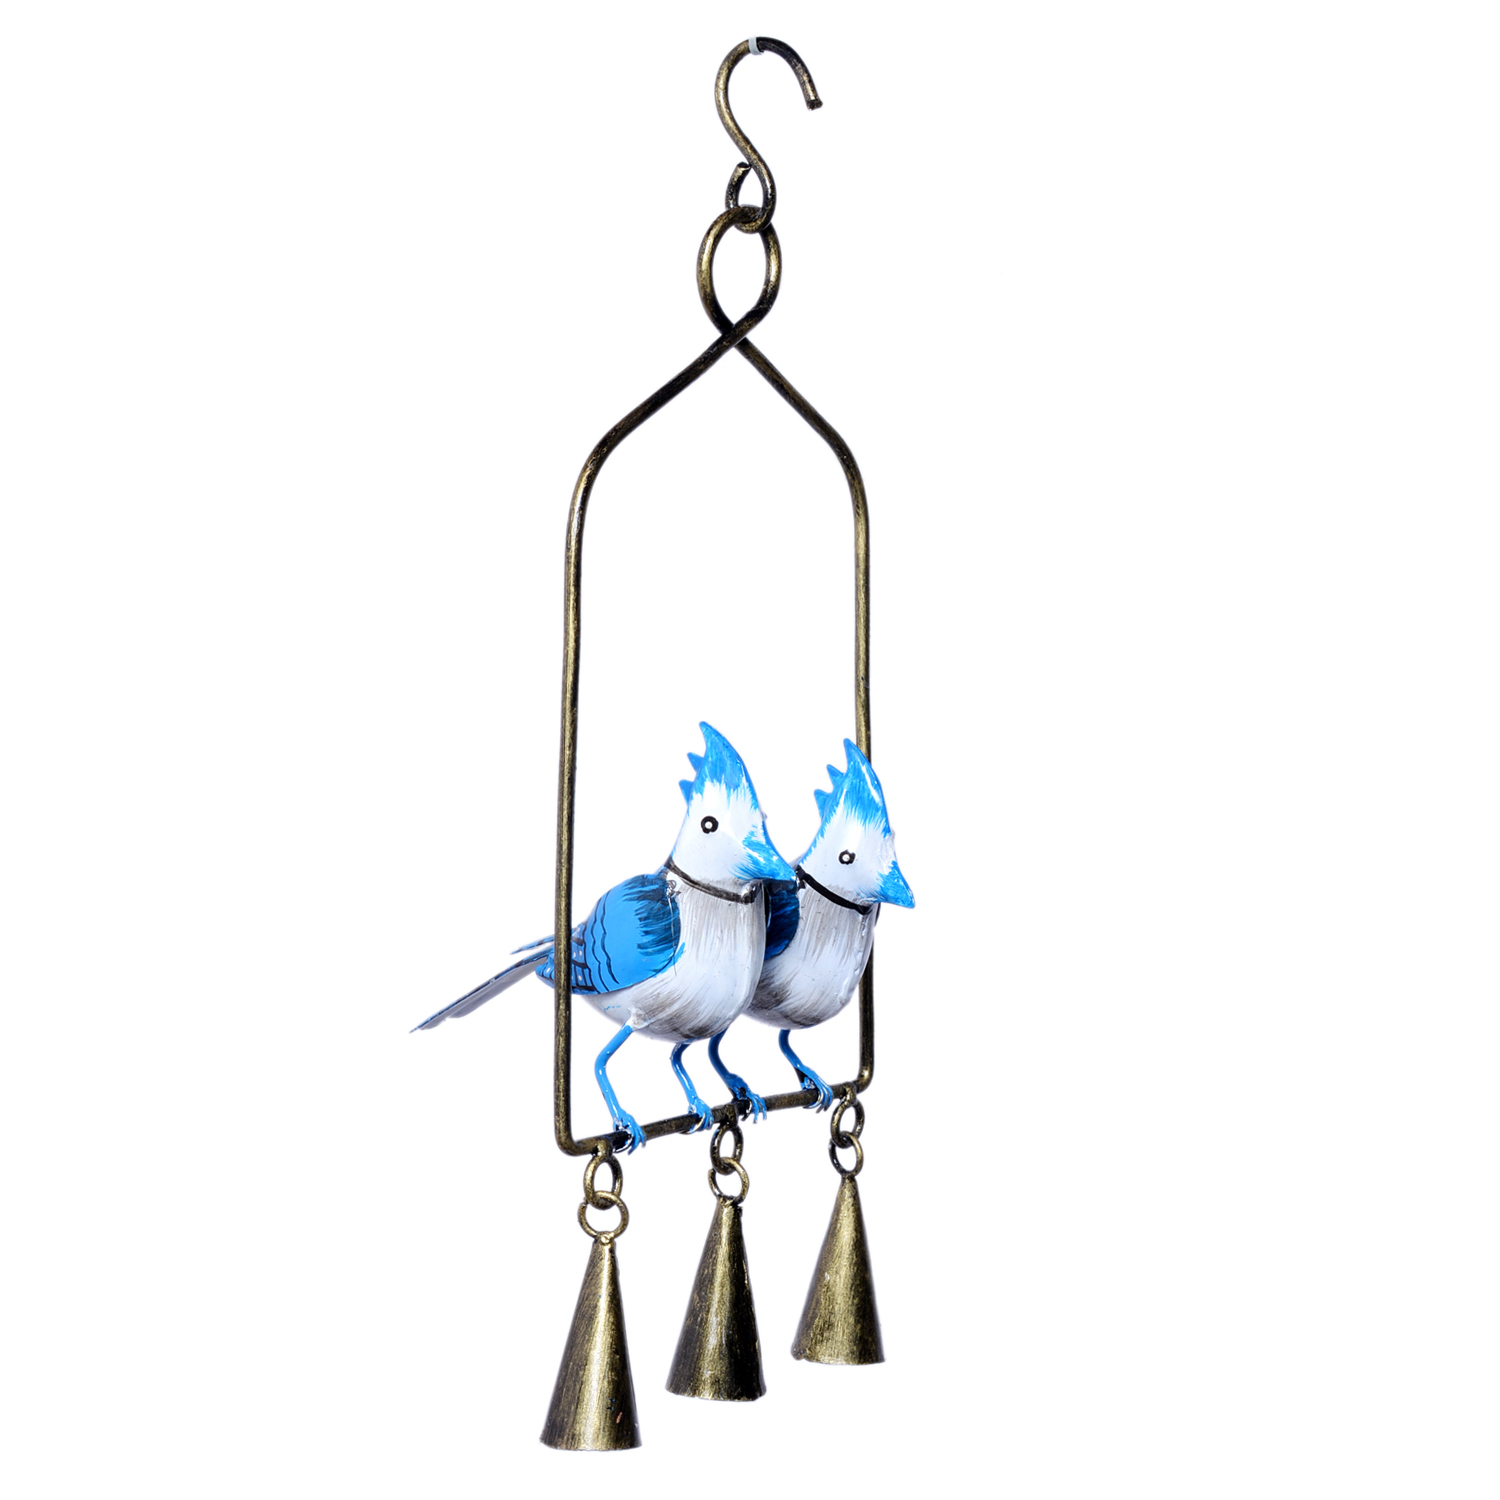 Decorative Iron Painted Hanging Bird With Bells